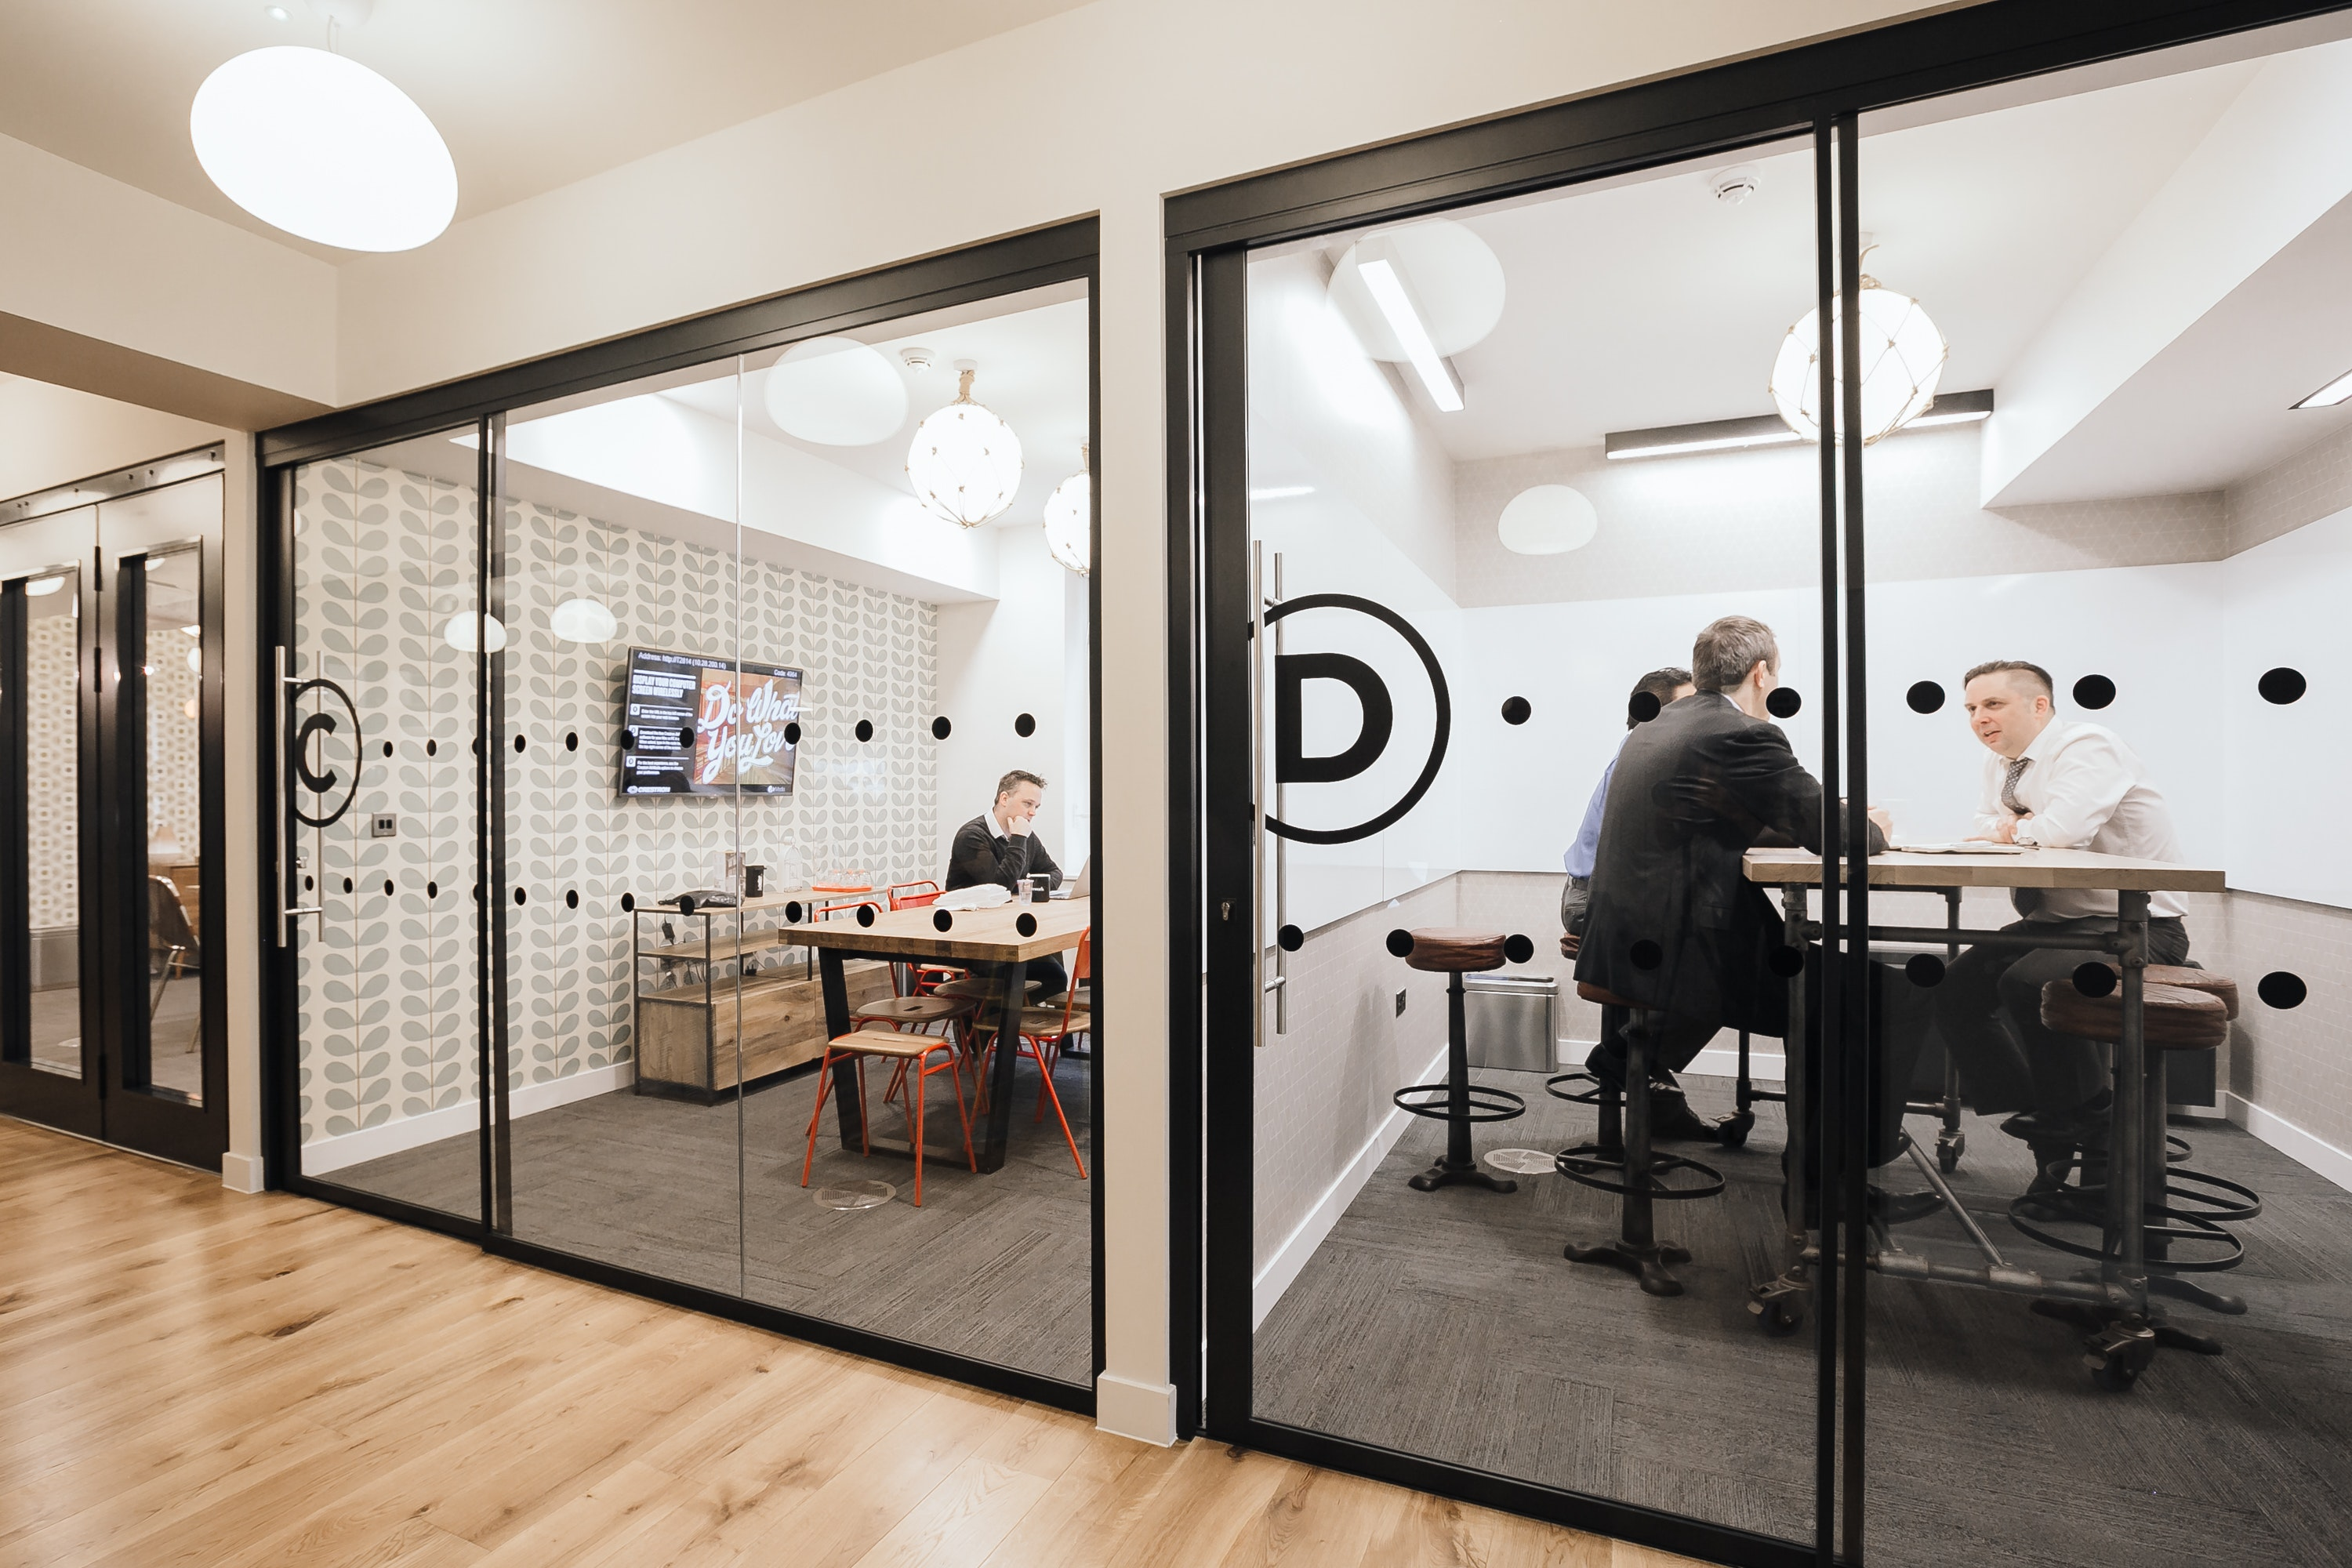 Pleasing Office Space Paddington 2 Eastbourne Terrace Wework Largest Home Design Picture Inspirations Pitcheantrous